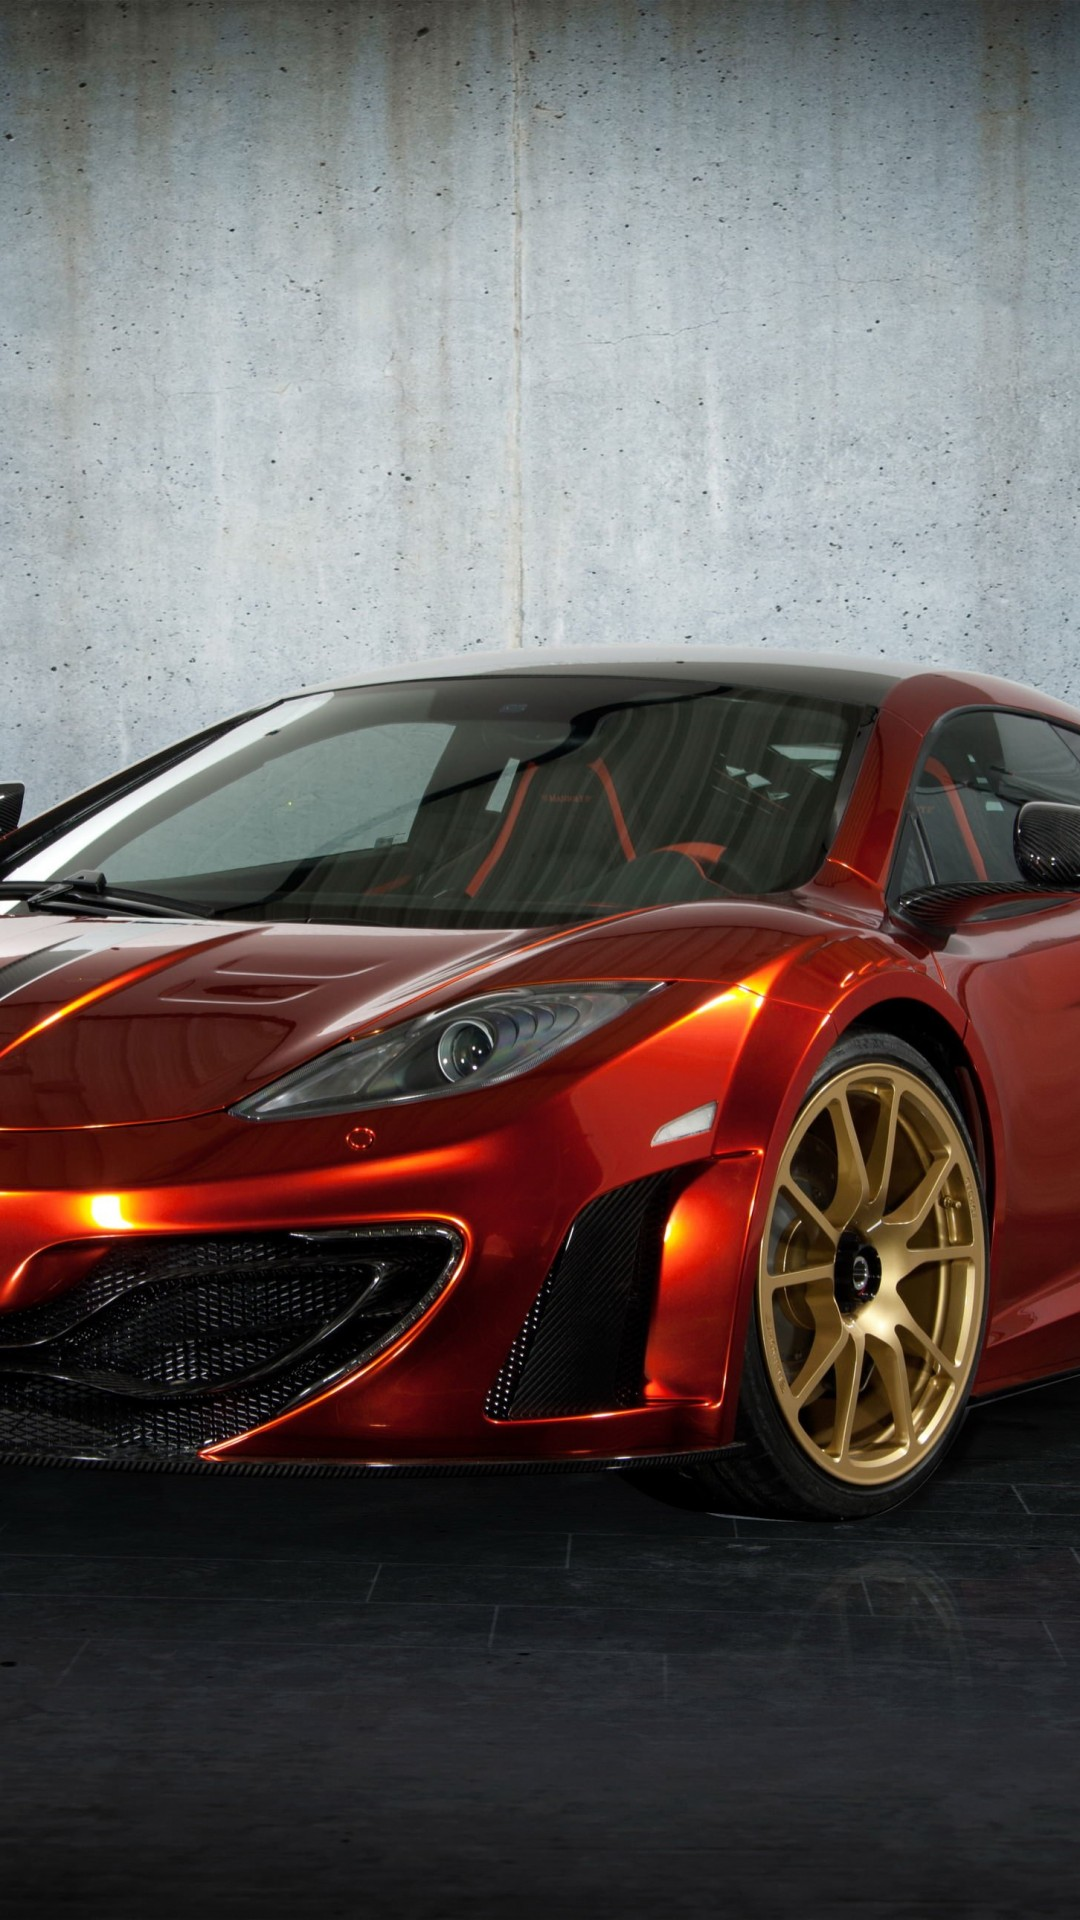 McLaren MP4-12Cf By Mansory Wallpaper for LG G2